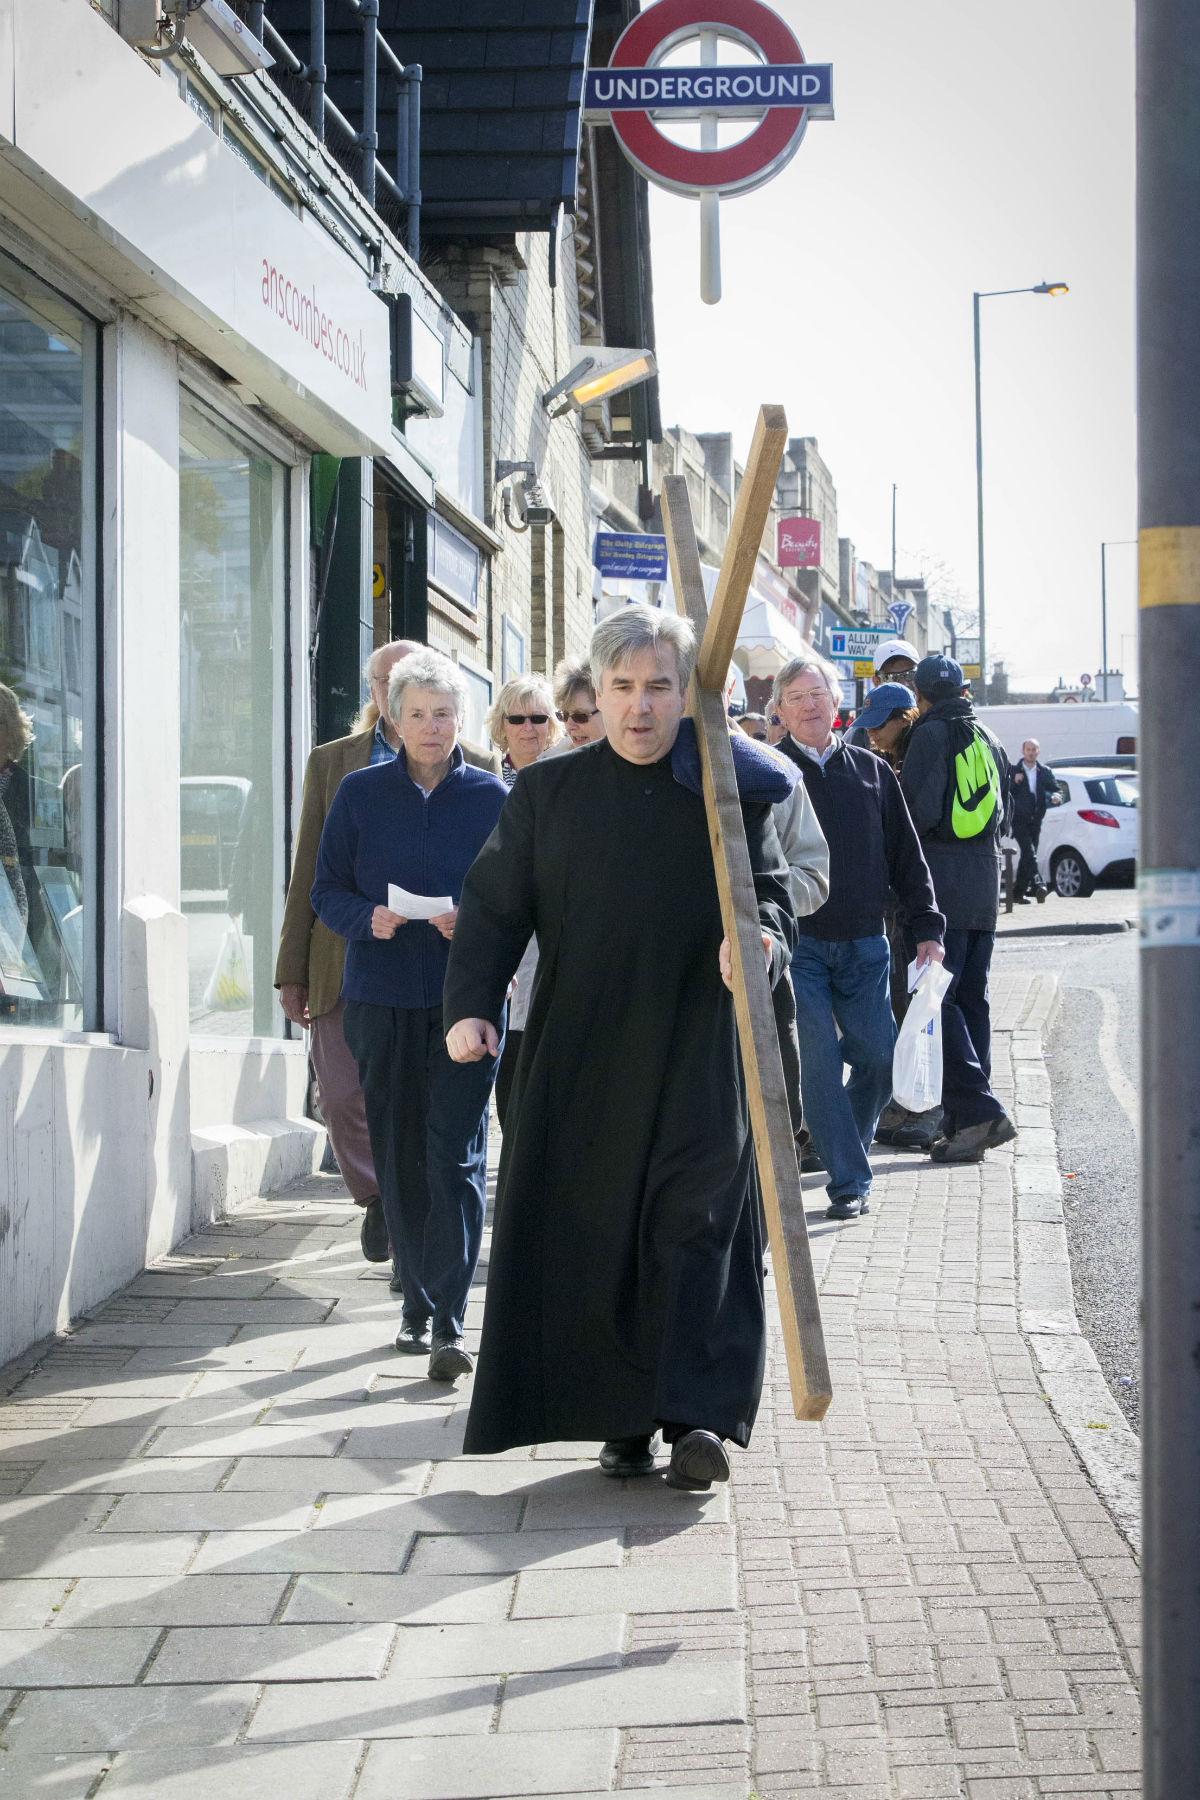 Churchgoers parade through streets in annual Walk of Witness